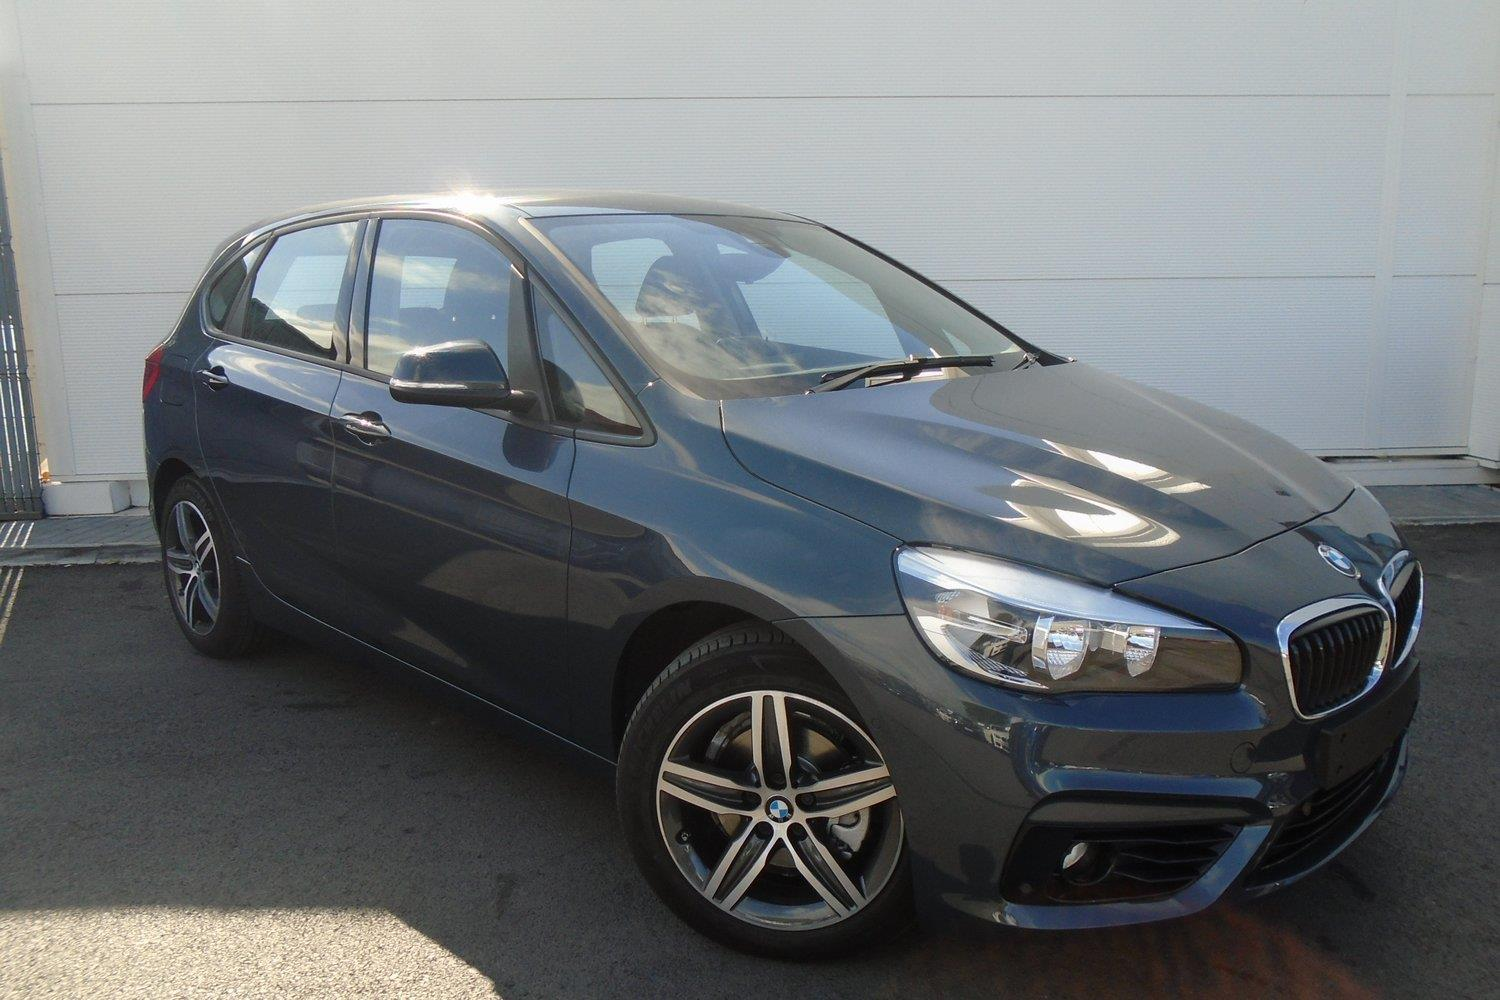 BMW 2 Series Active Tourer 5-Door NX16DKA - Image 9